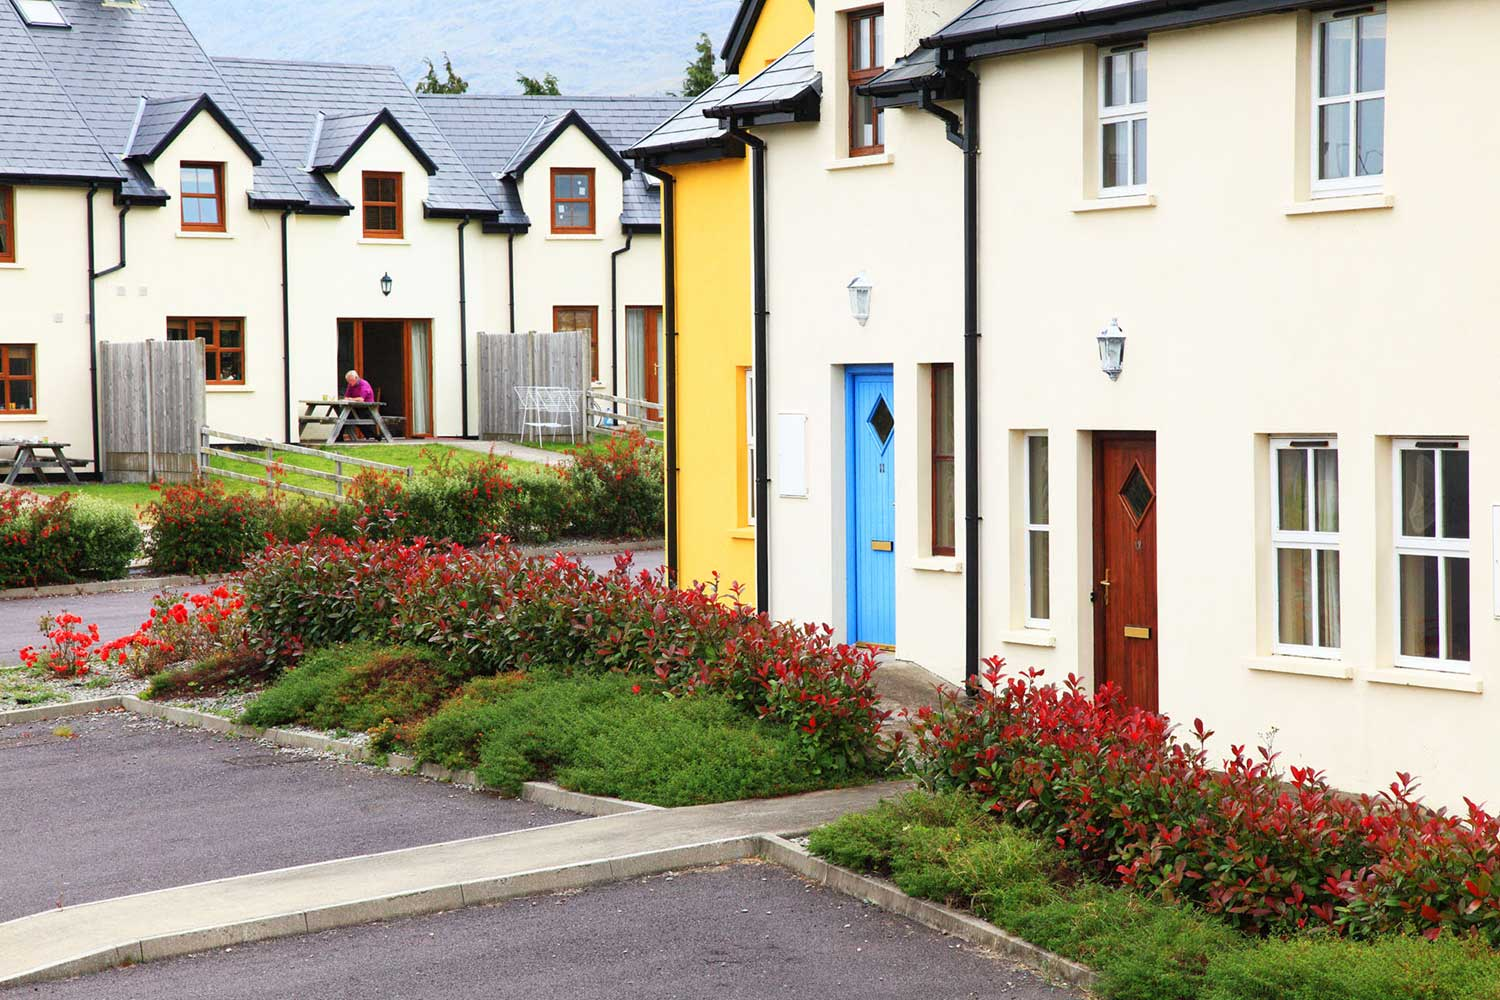 Ardgroom-Leisure-Village-self-catering-accommodation-west-cork-ireland-2-web.jpg